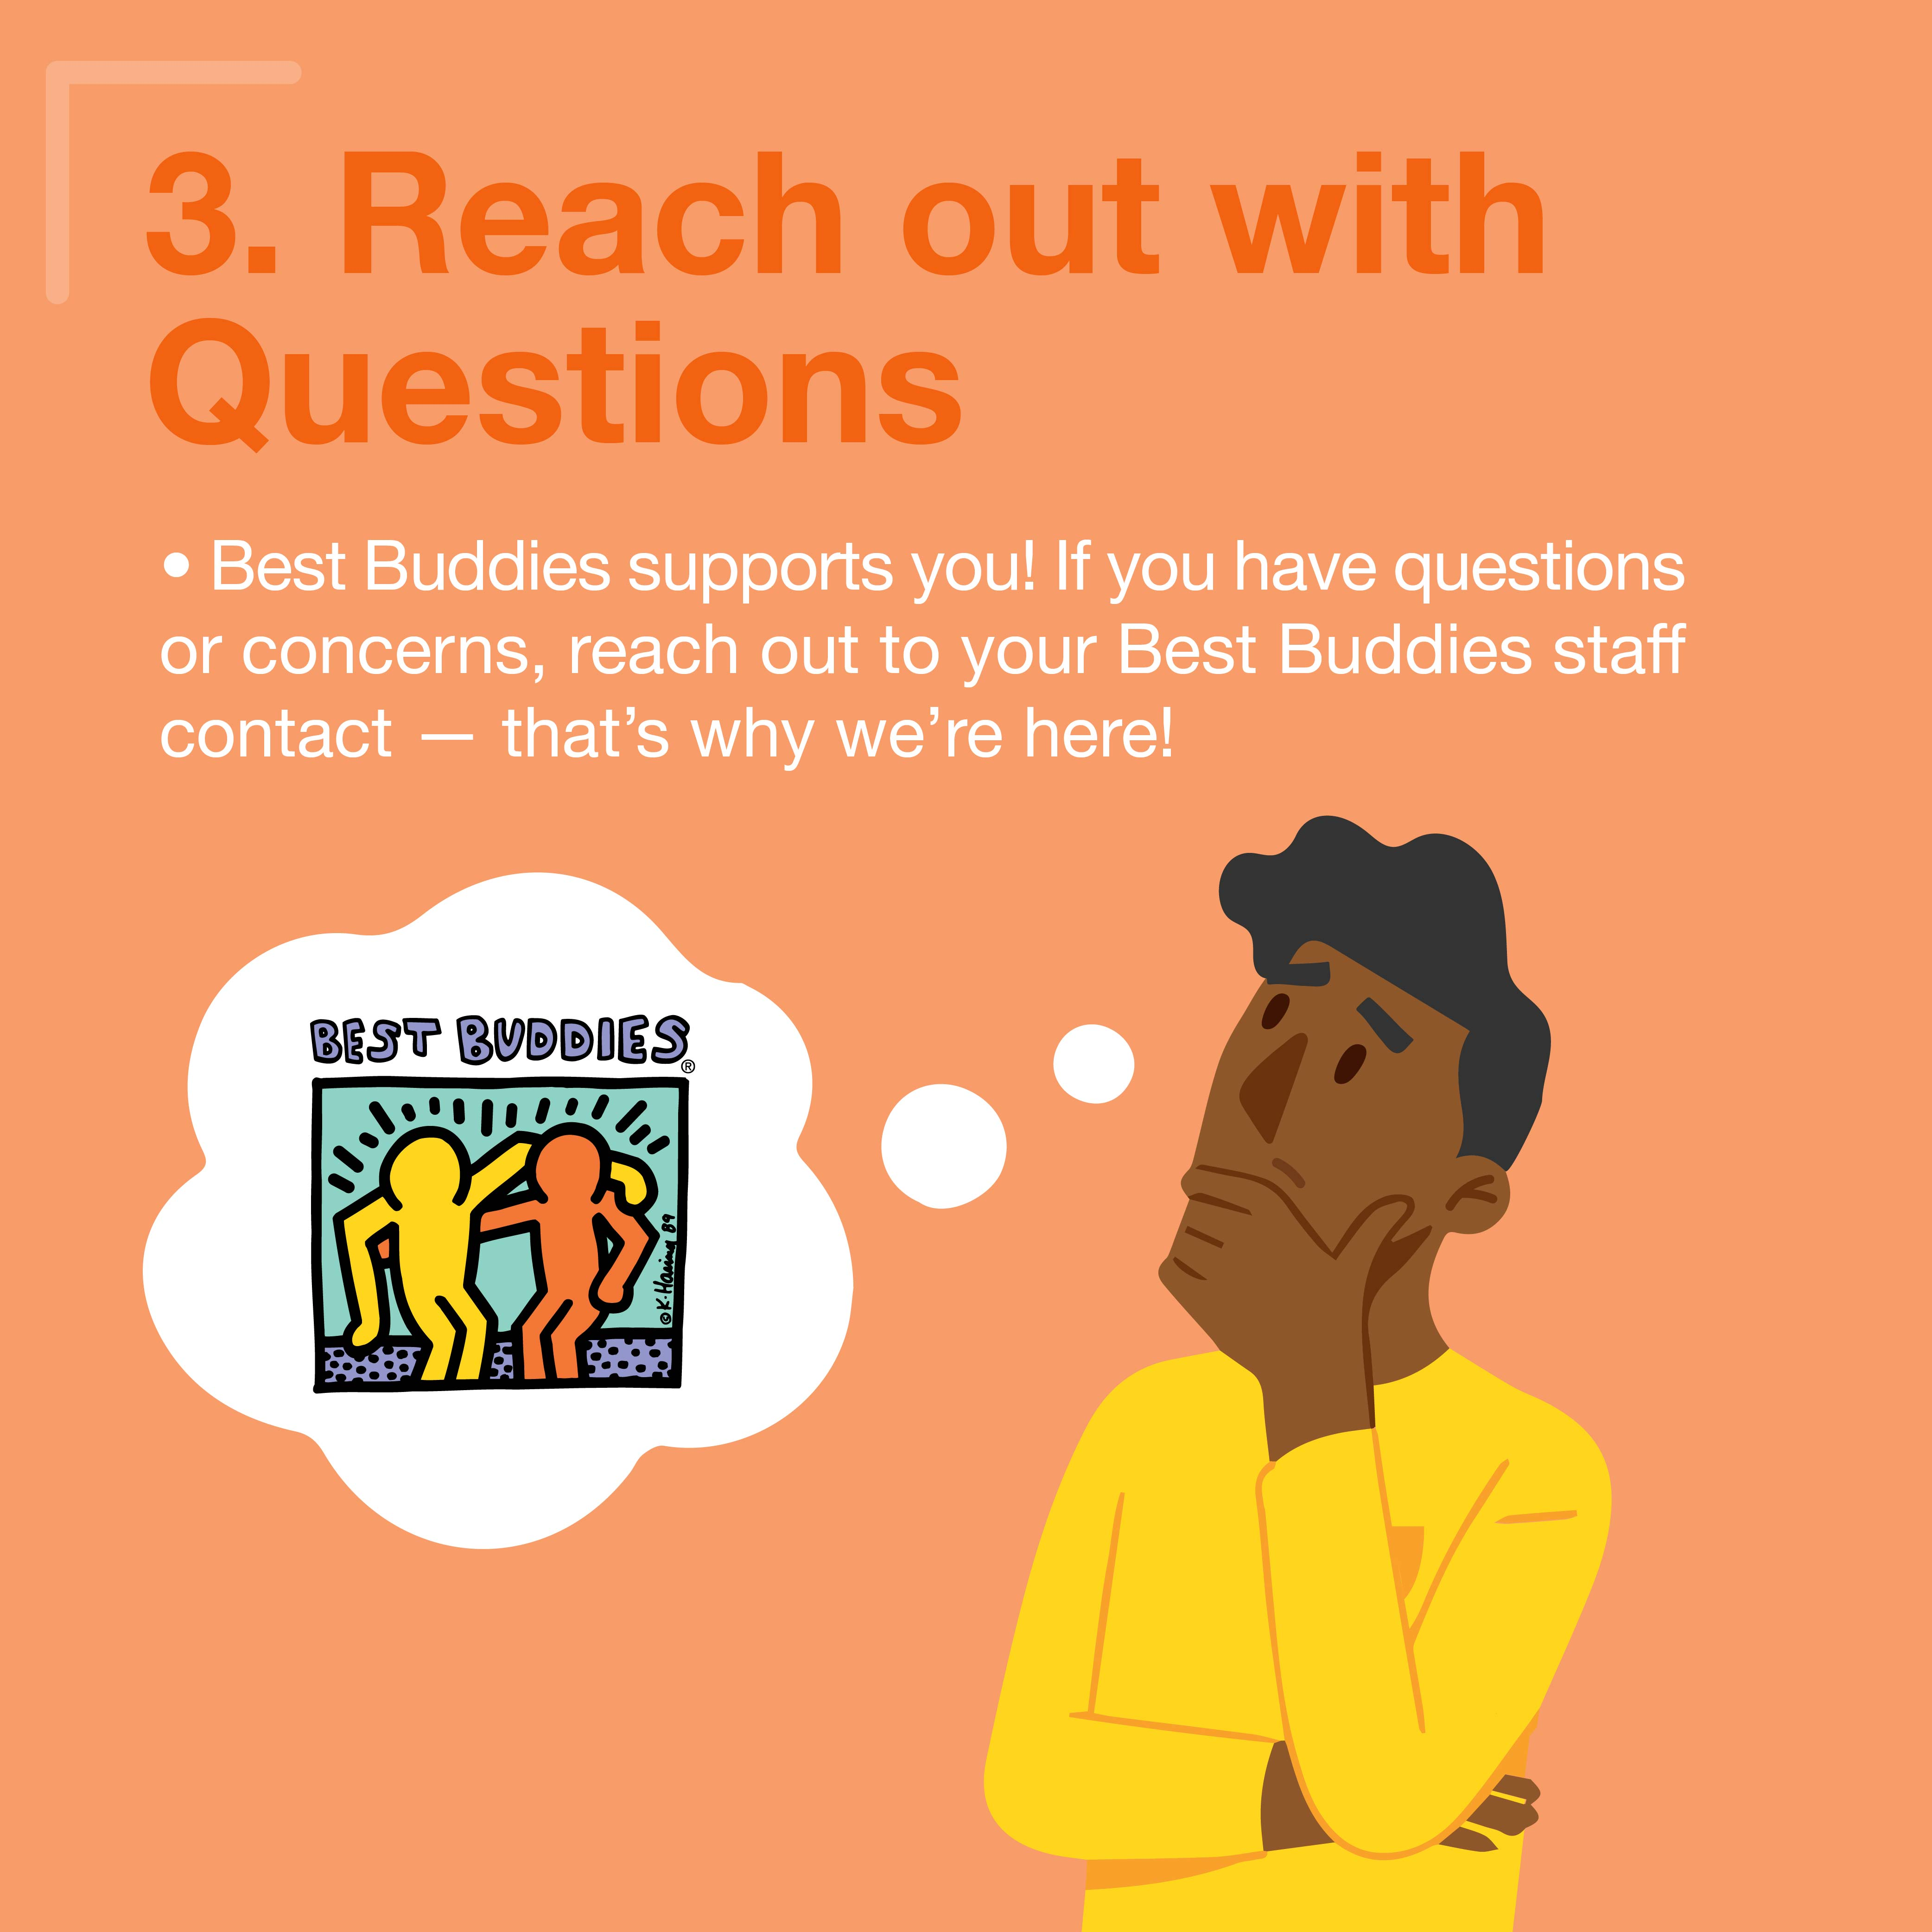 3. Reach out with questions! Best Buddies supports you! If you have questions or concerns, reach out to your Best Buddies staff contact - that's why we're here!